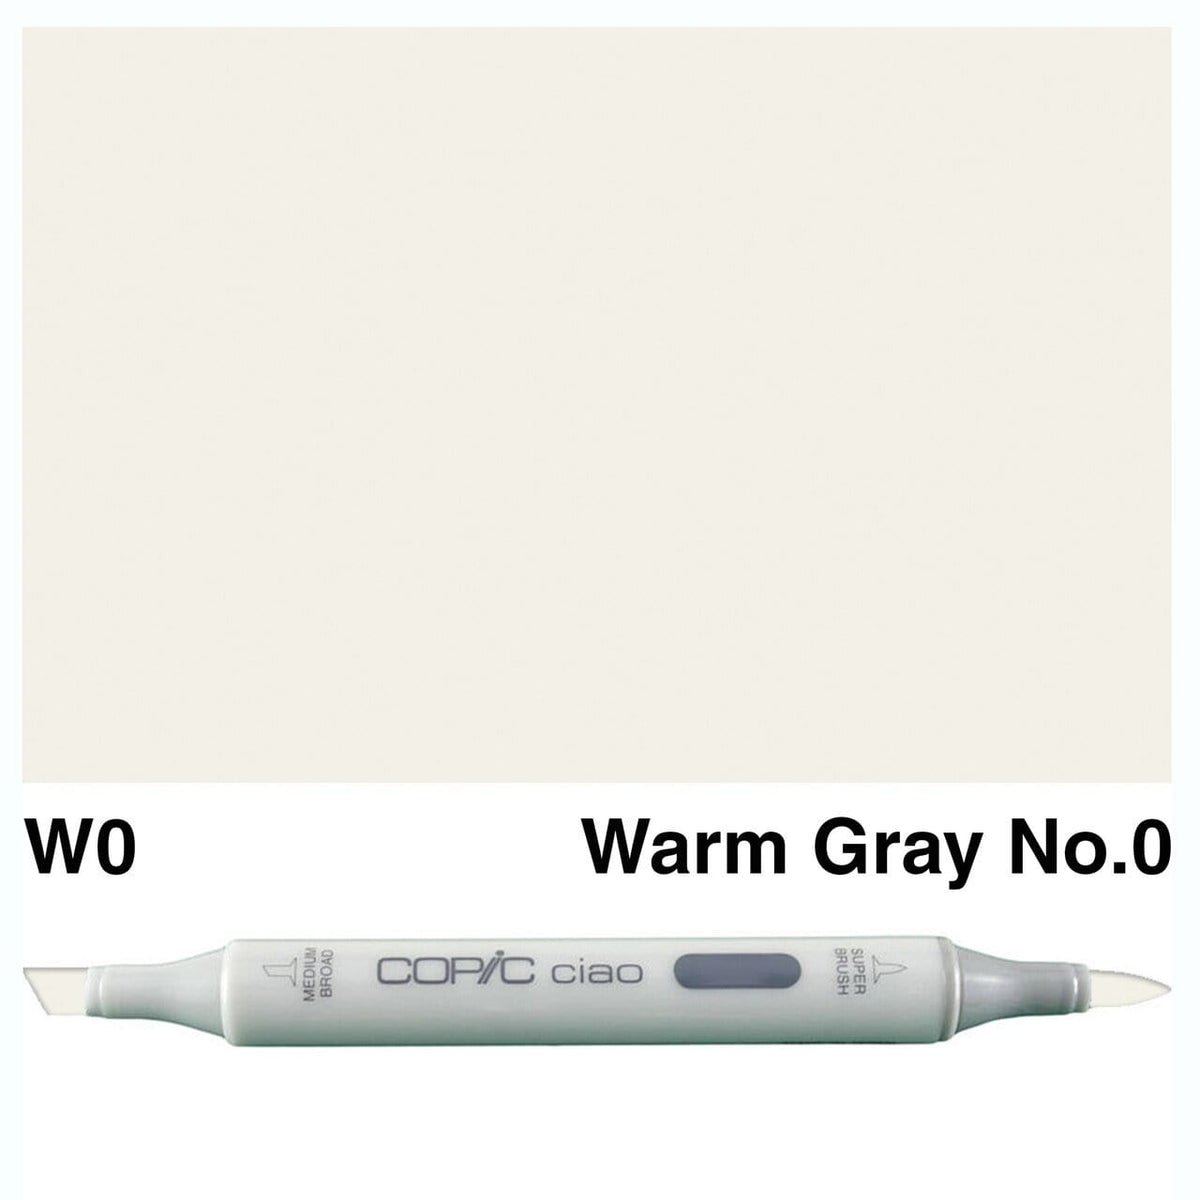 Copic Ciao W0 warm gray n║0